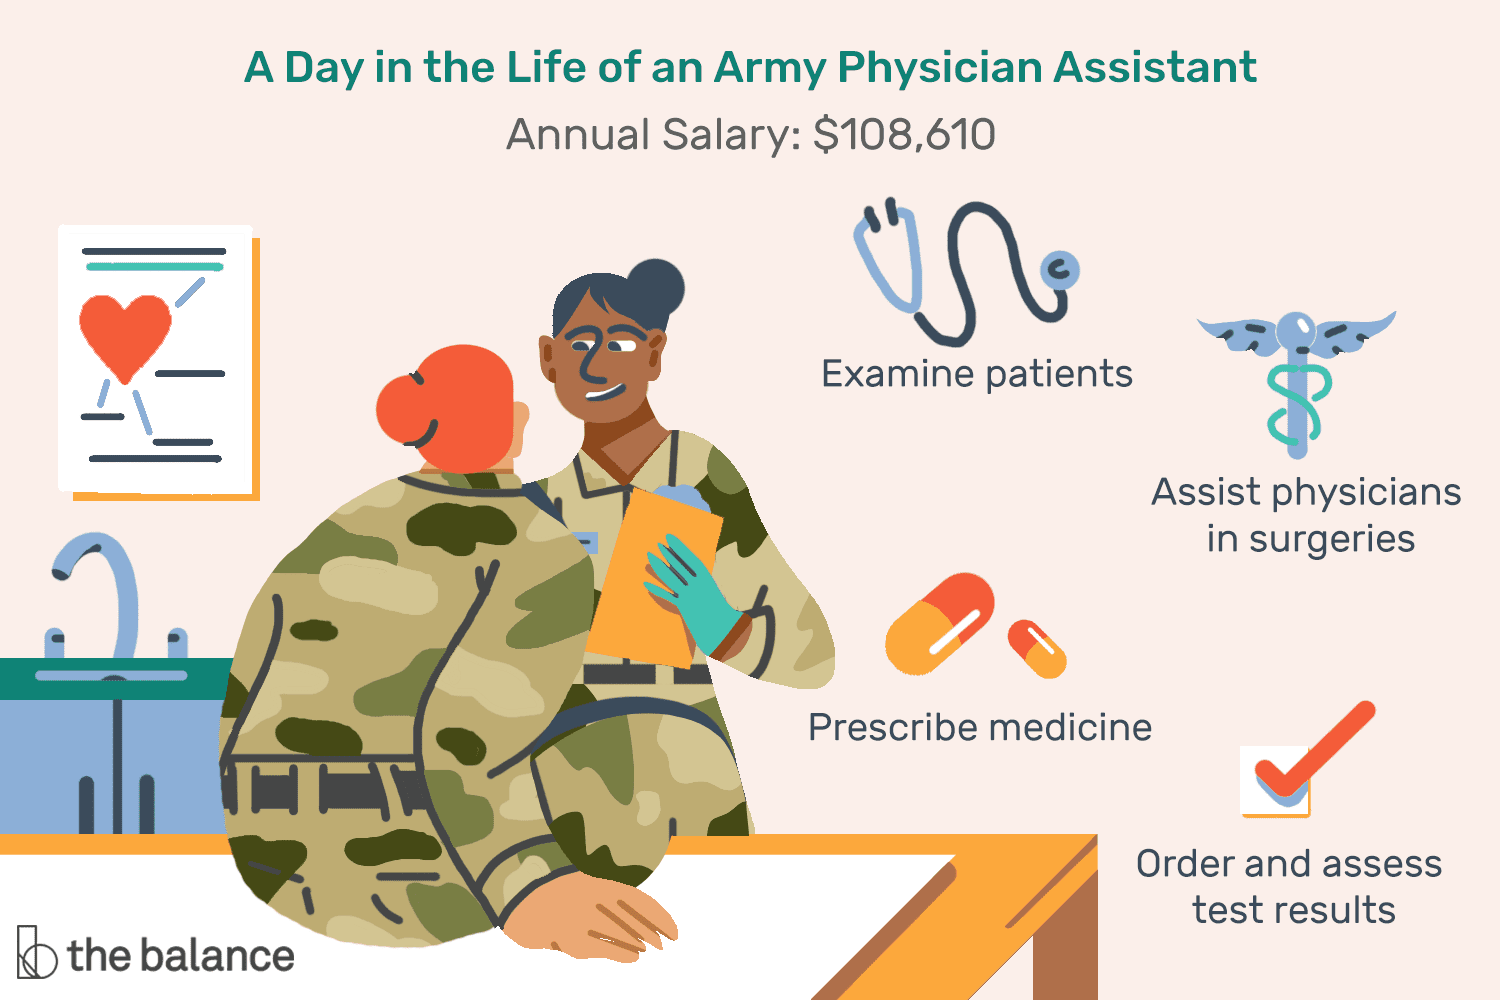 Army Physician Assistant Job Description: Salary, Skills, & More